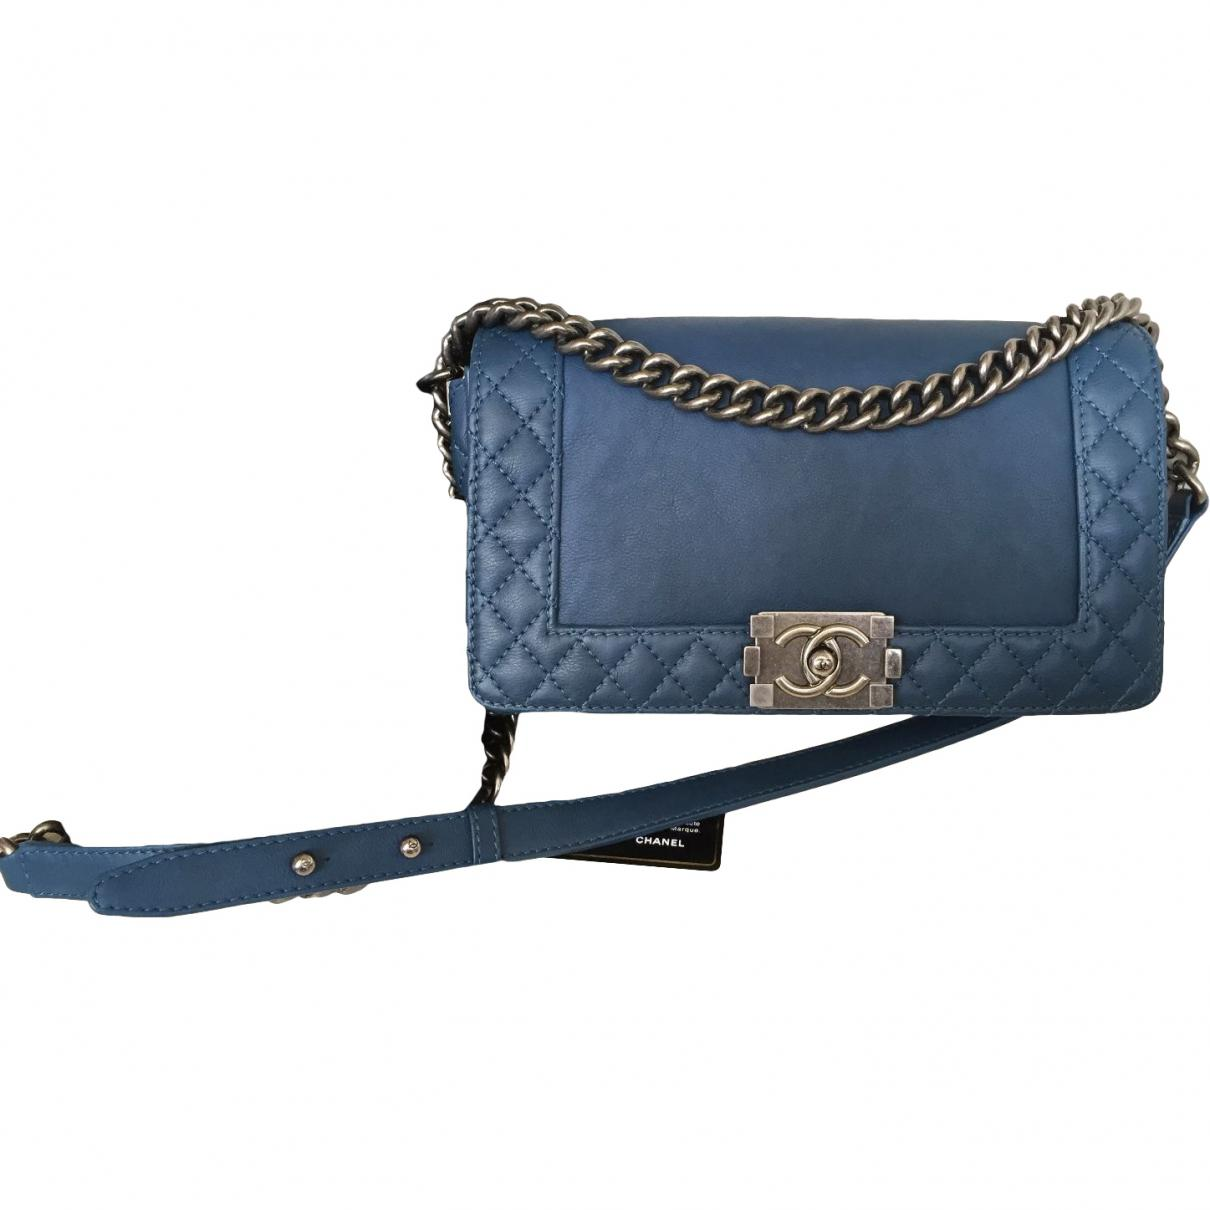 9fa6913dde32 Lyst - Chanel Pre-owned Boy Leather Handbag in Blue